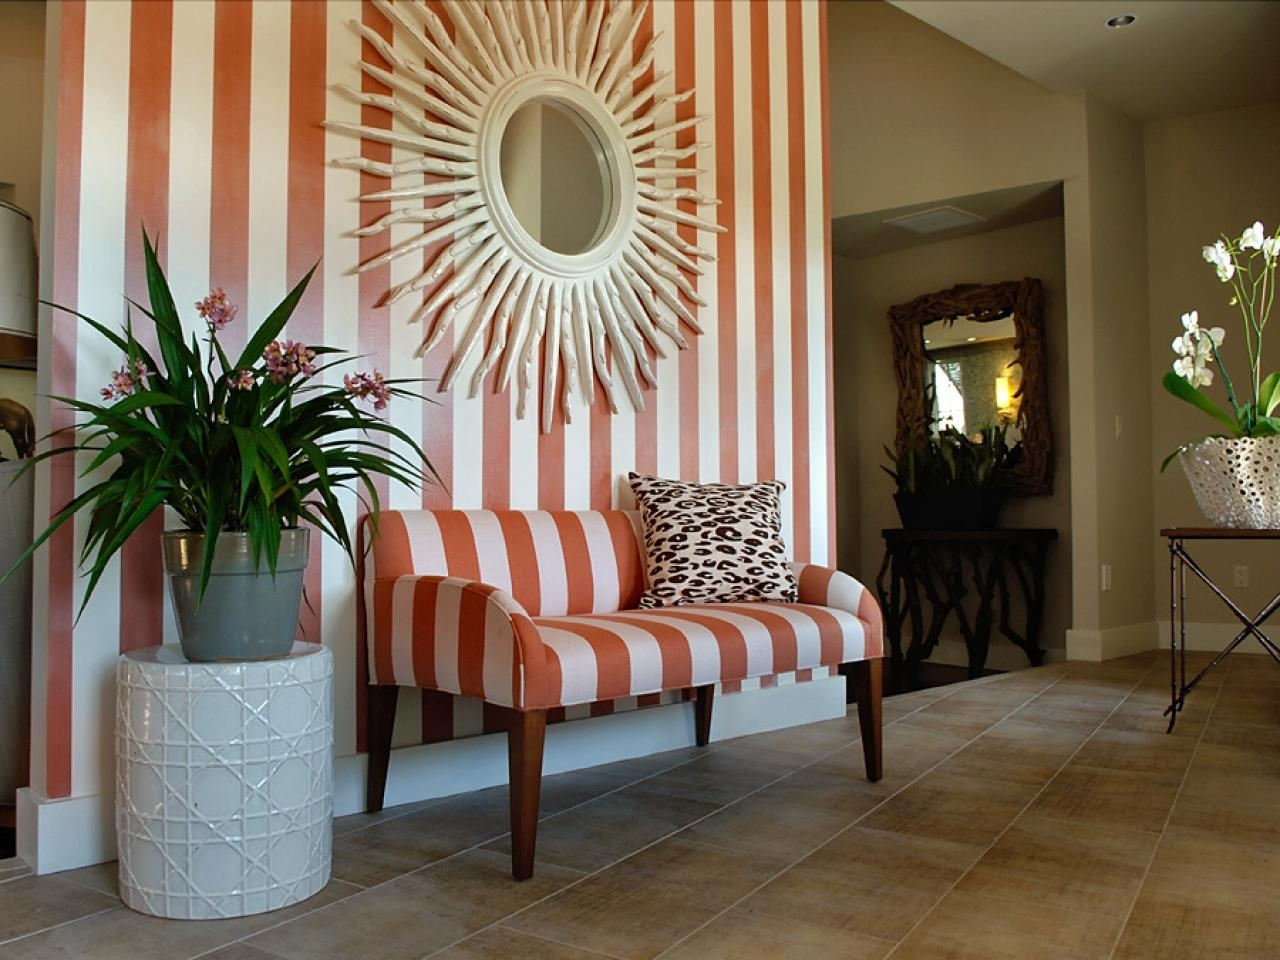 Interior | Striped Foyer Theme With Sunburst Wall Mirror Decor In Best And Newest Entrance Wall Accents (View 15 of 15)